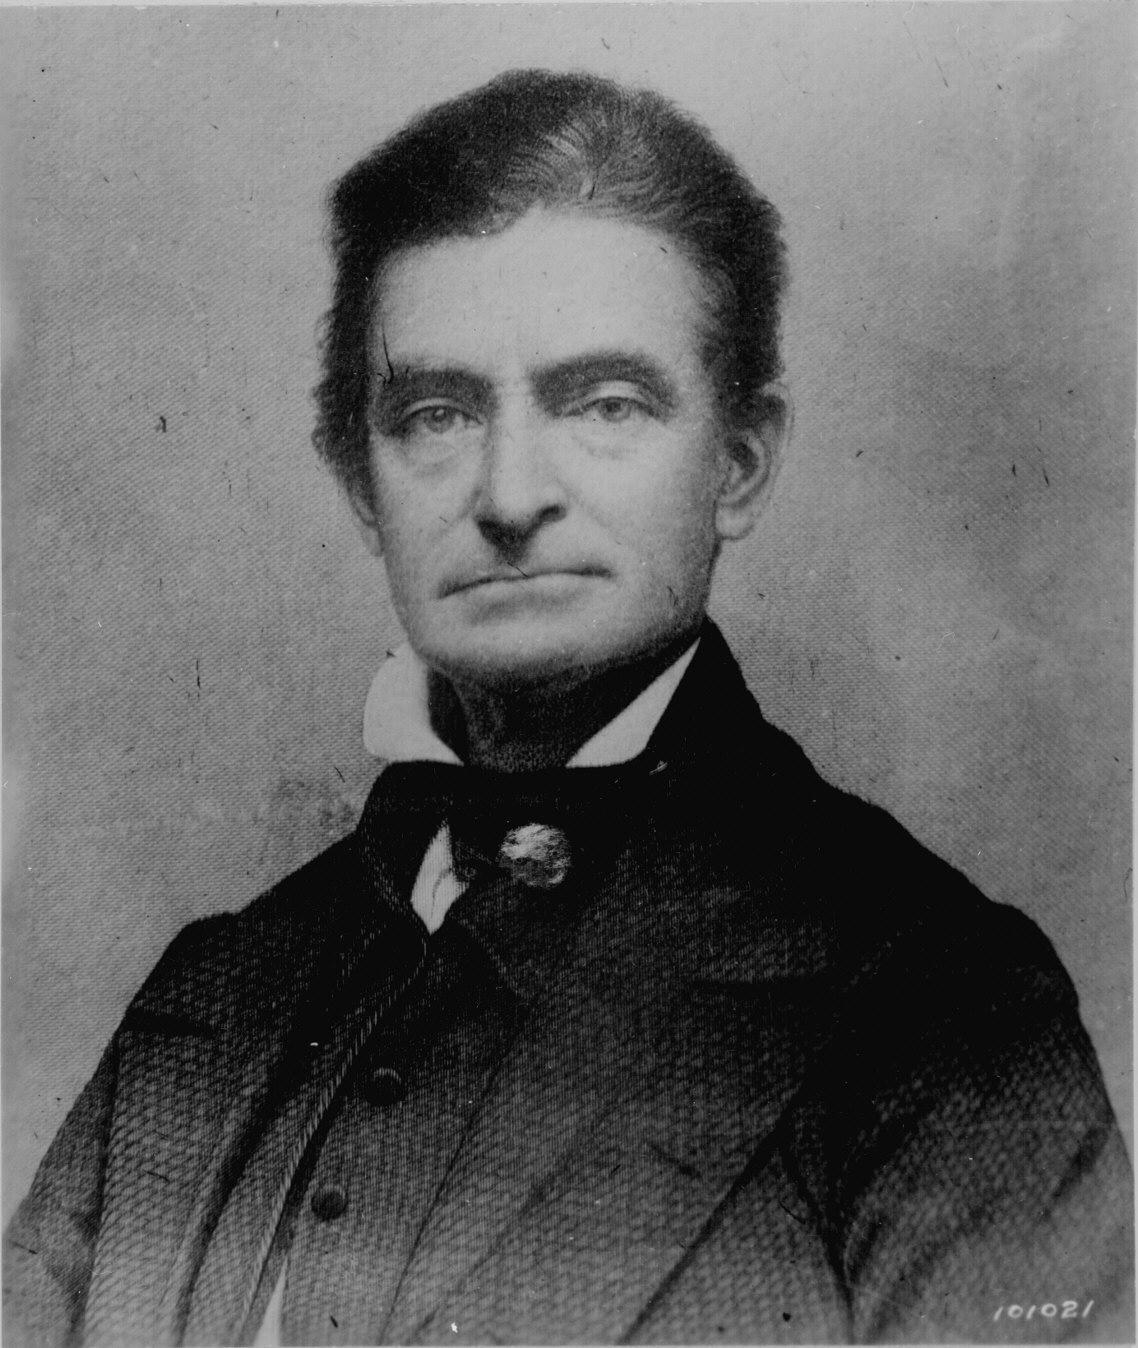 John Brown (click to see full size image)